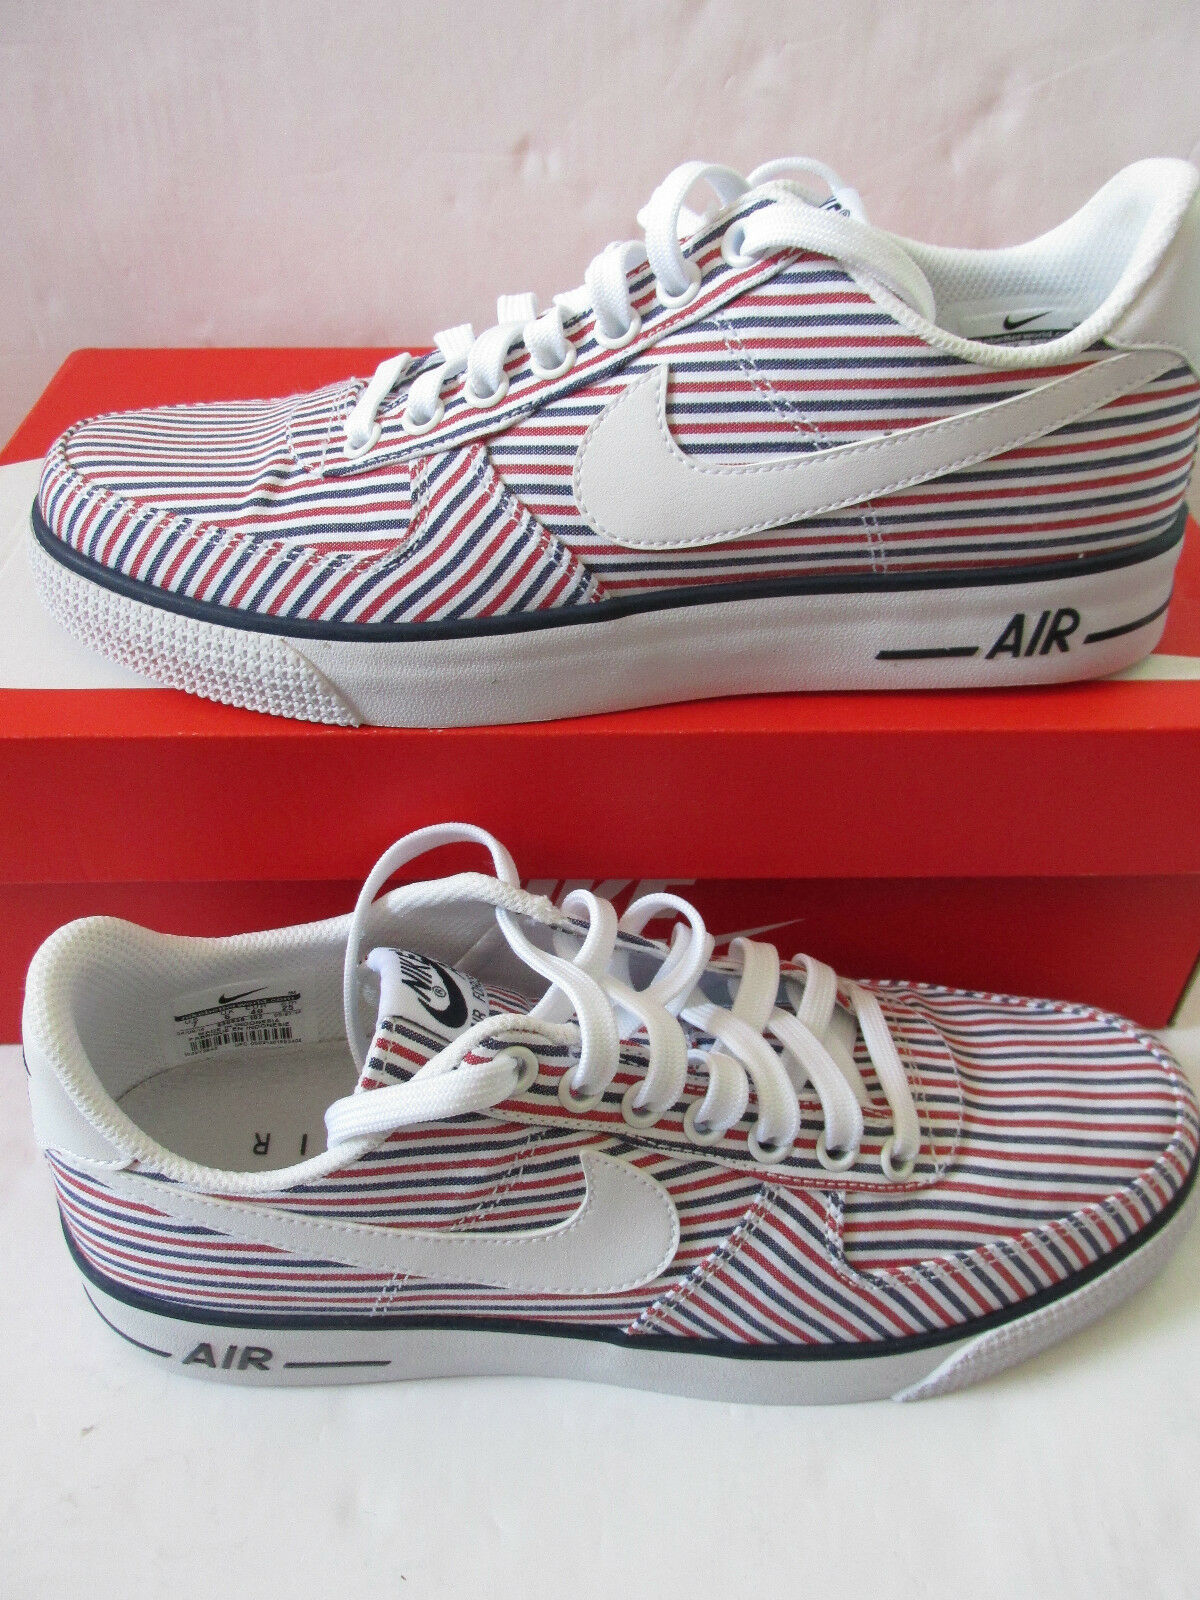 Nike Air Force 1 Ac Baskets Hommes 630939 102 Baskets